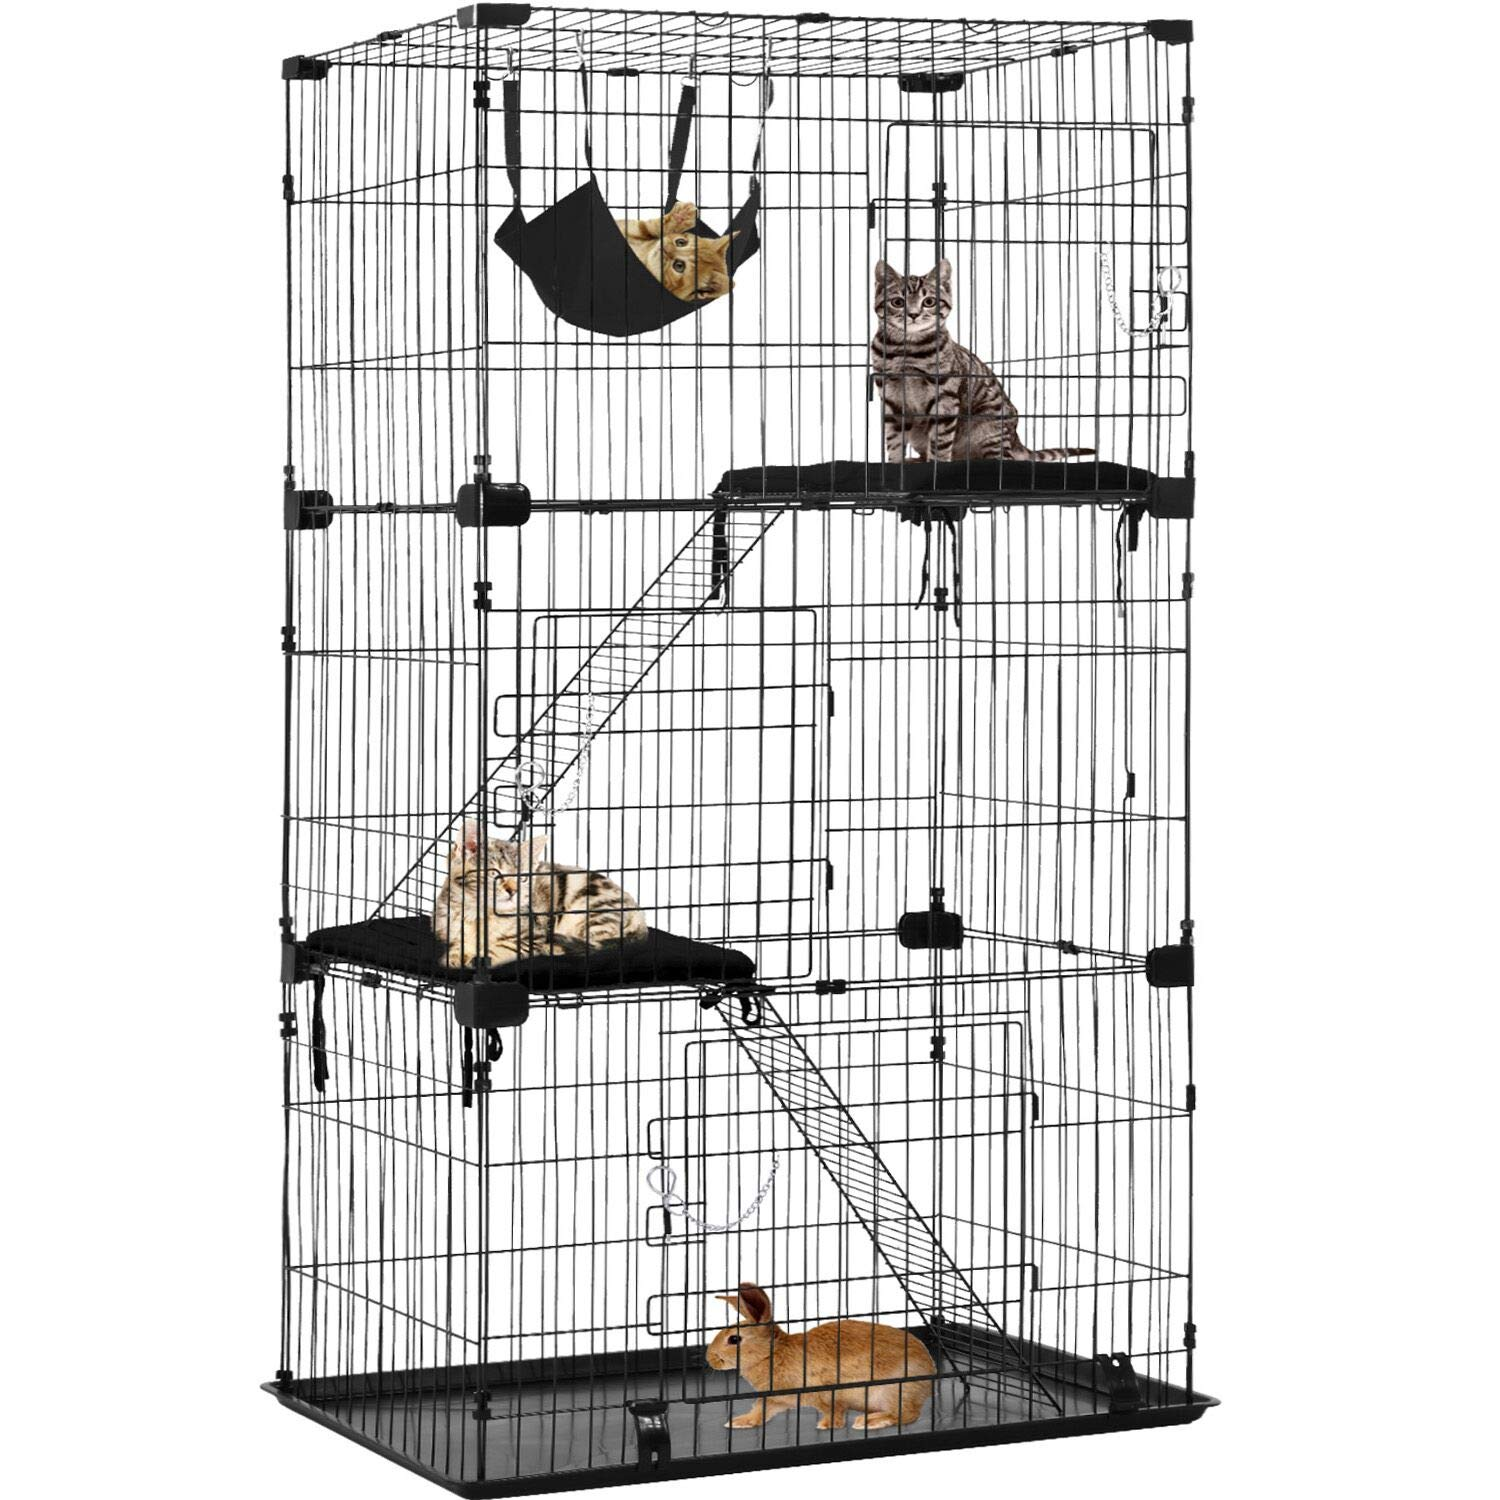 Cat Cage Cat Crate Cat Kennel Cat Playpen with Free Hammock 3 Cat Bed 3 Front Doors 2 Ramp Ladders Perching Shelves,67 inches (Black) by BestPet (Image #1)